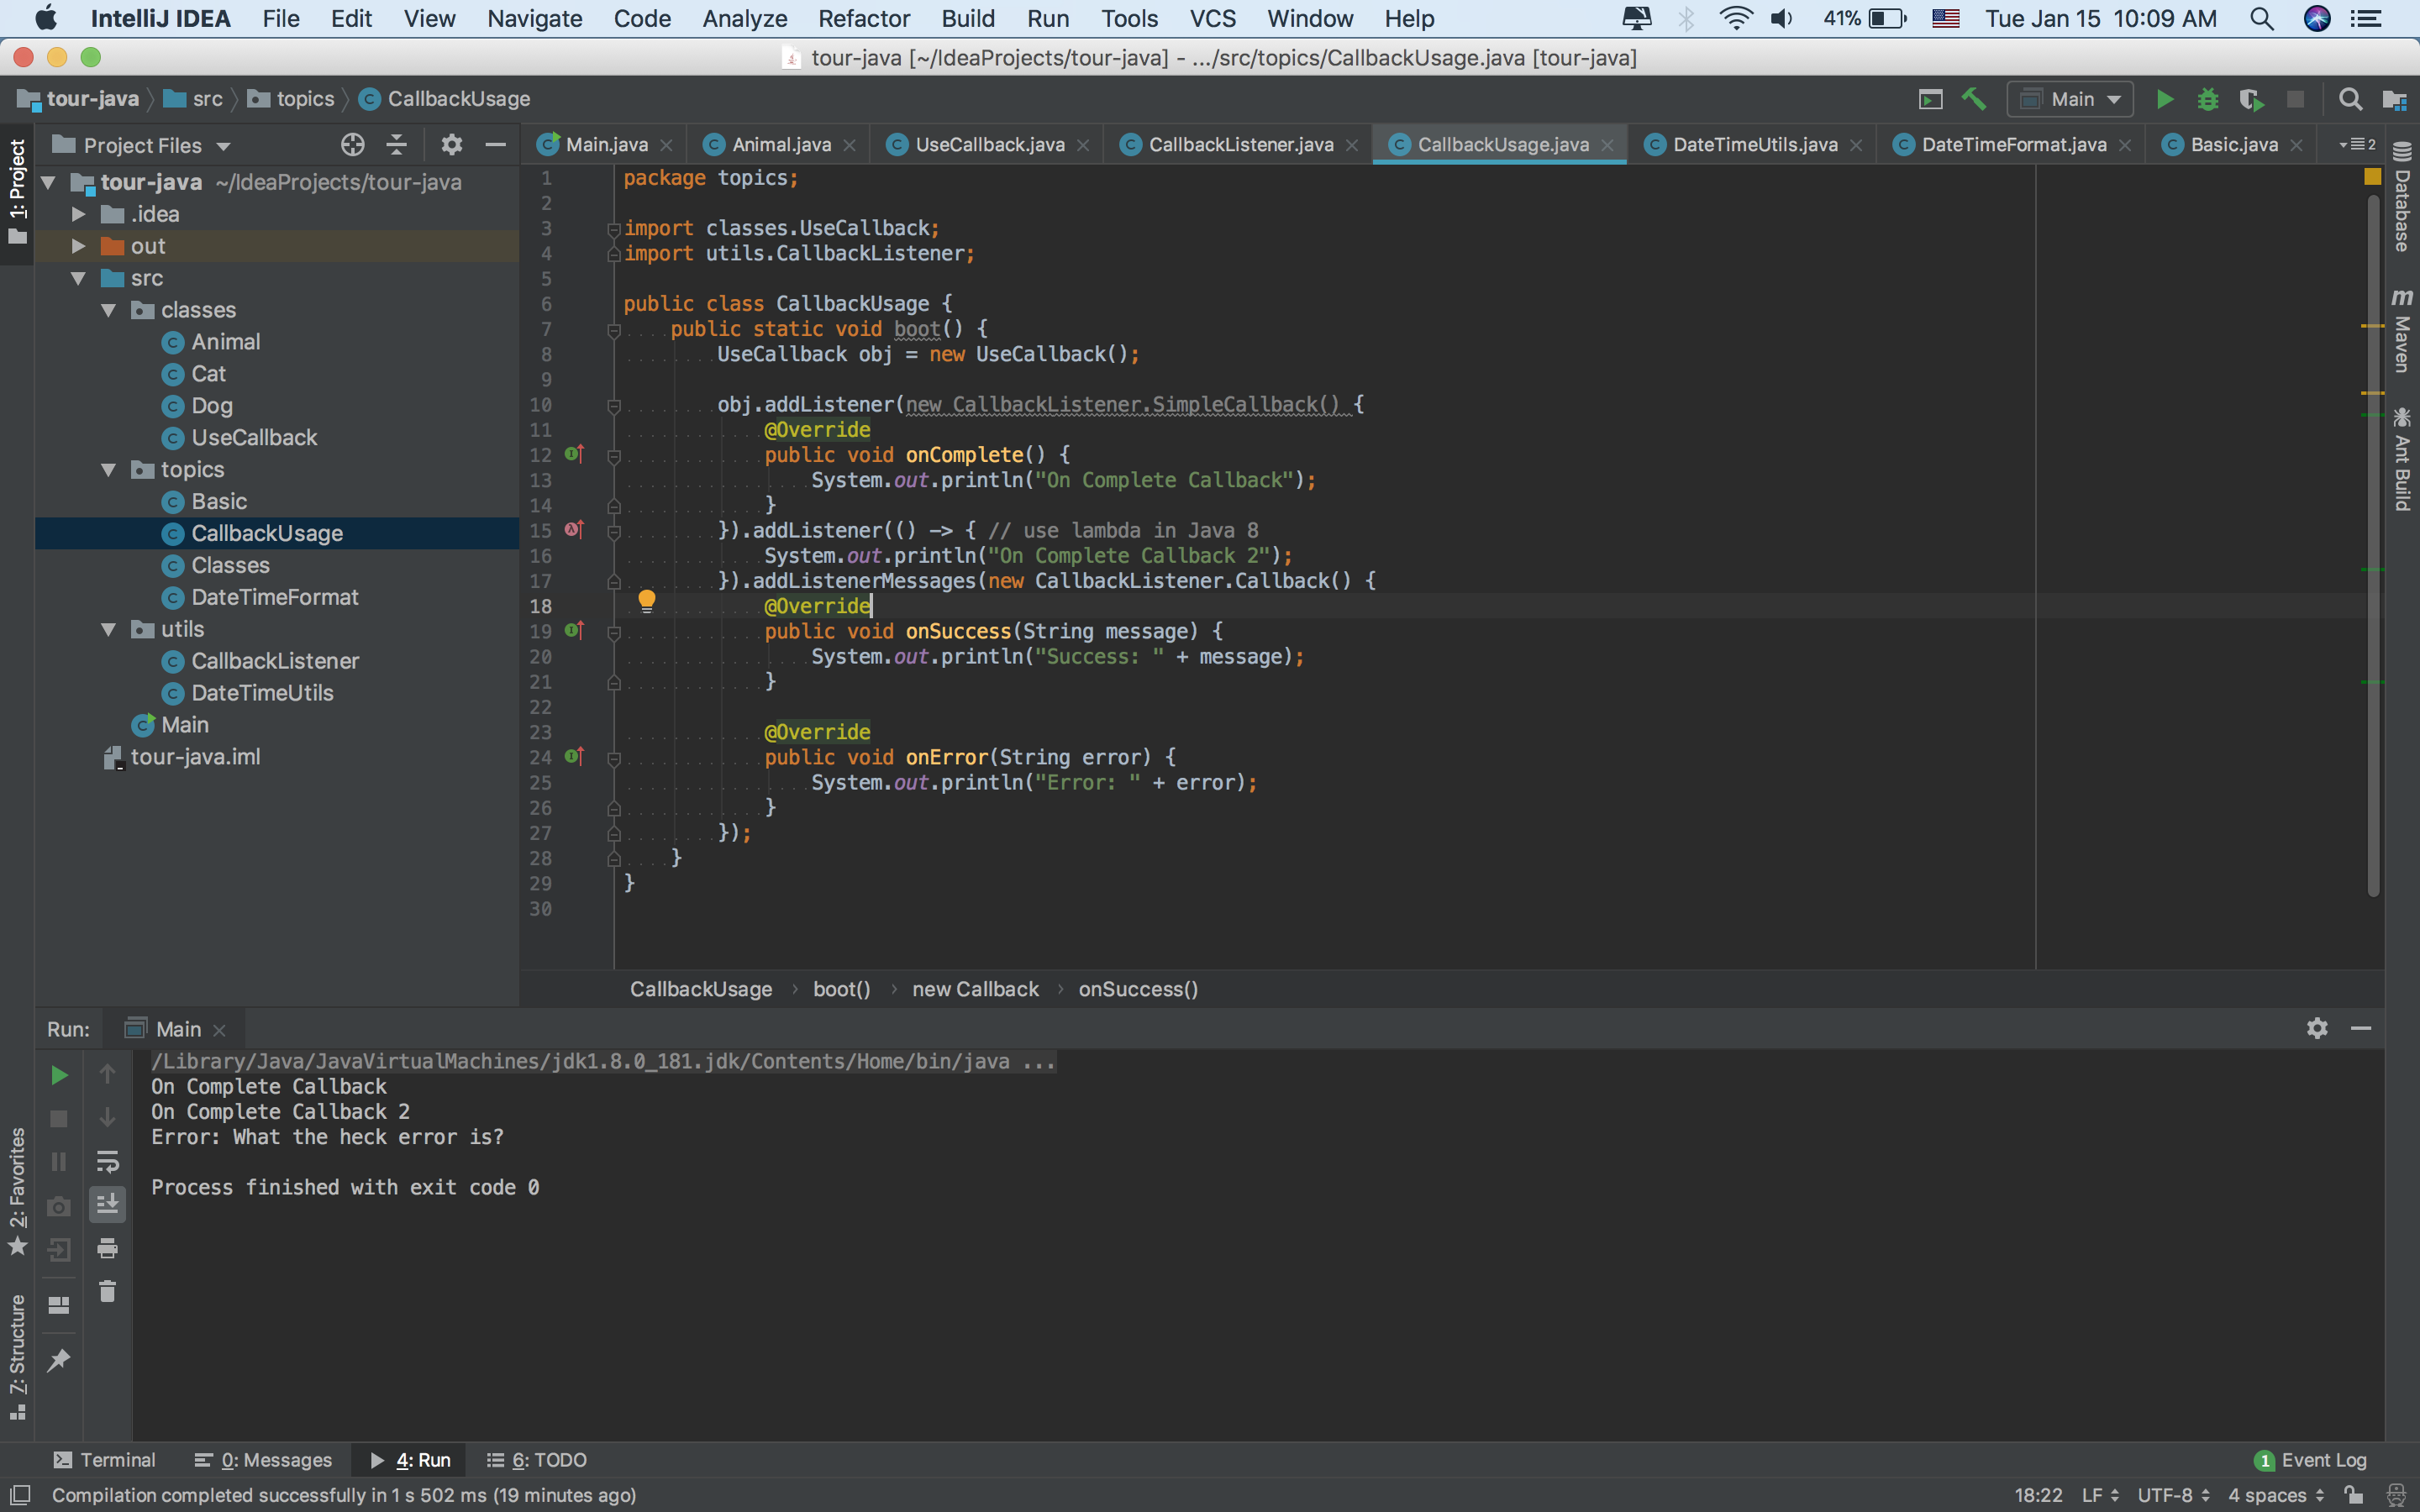 How To Get Intellij Ultimate For Free